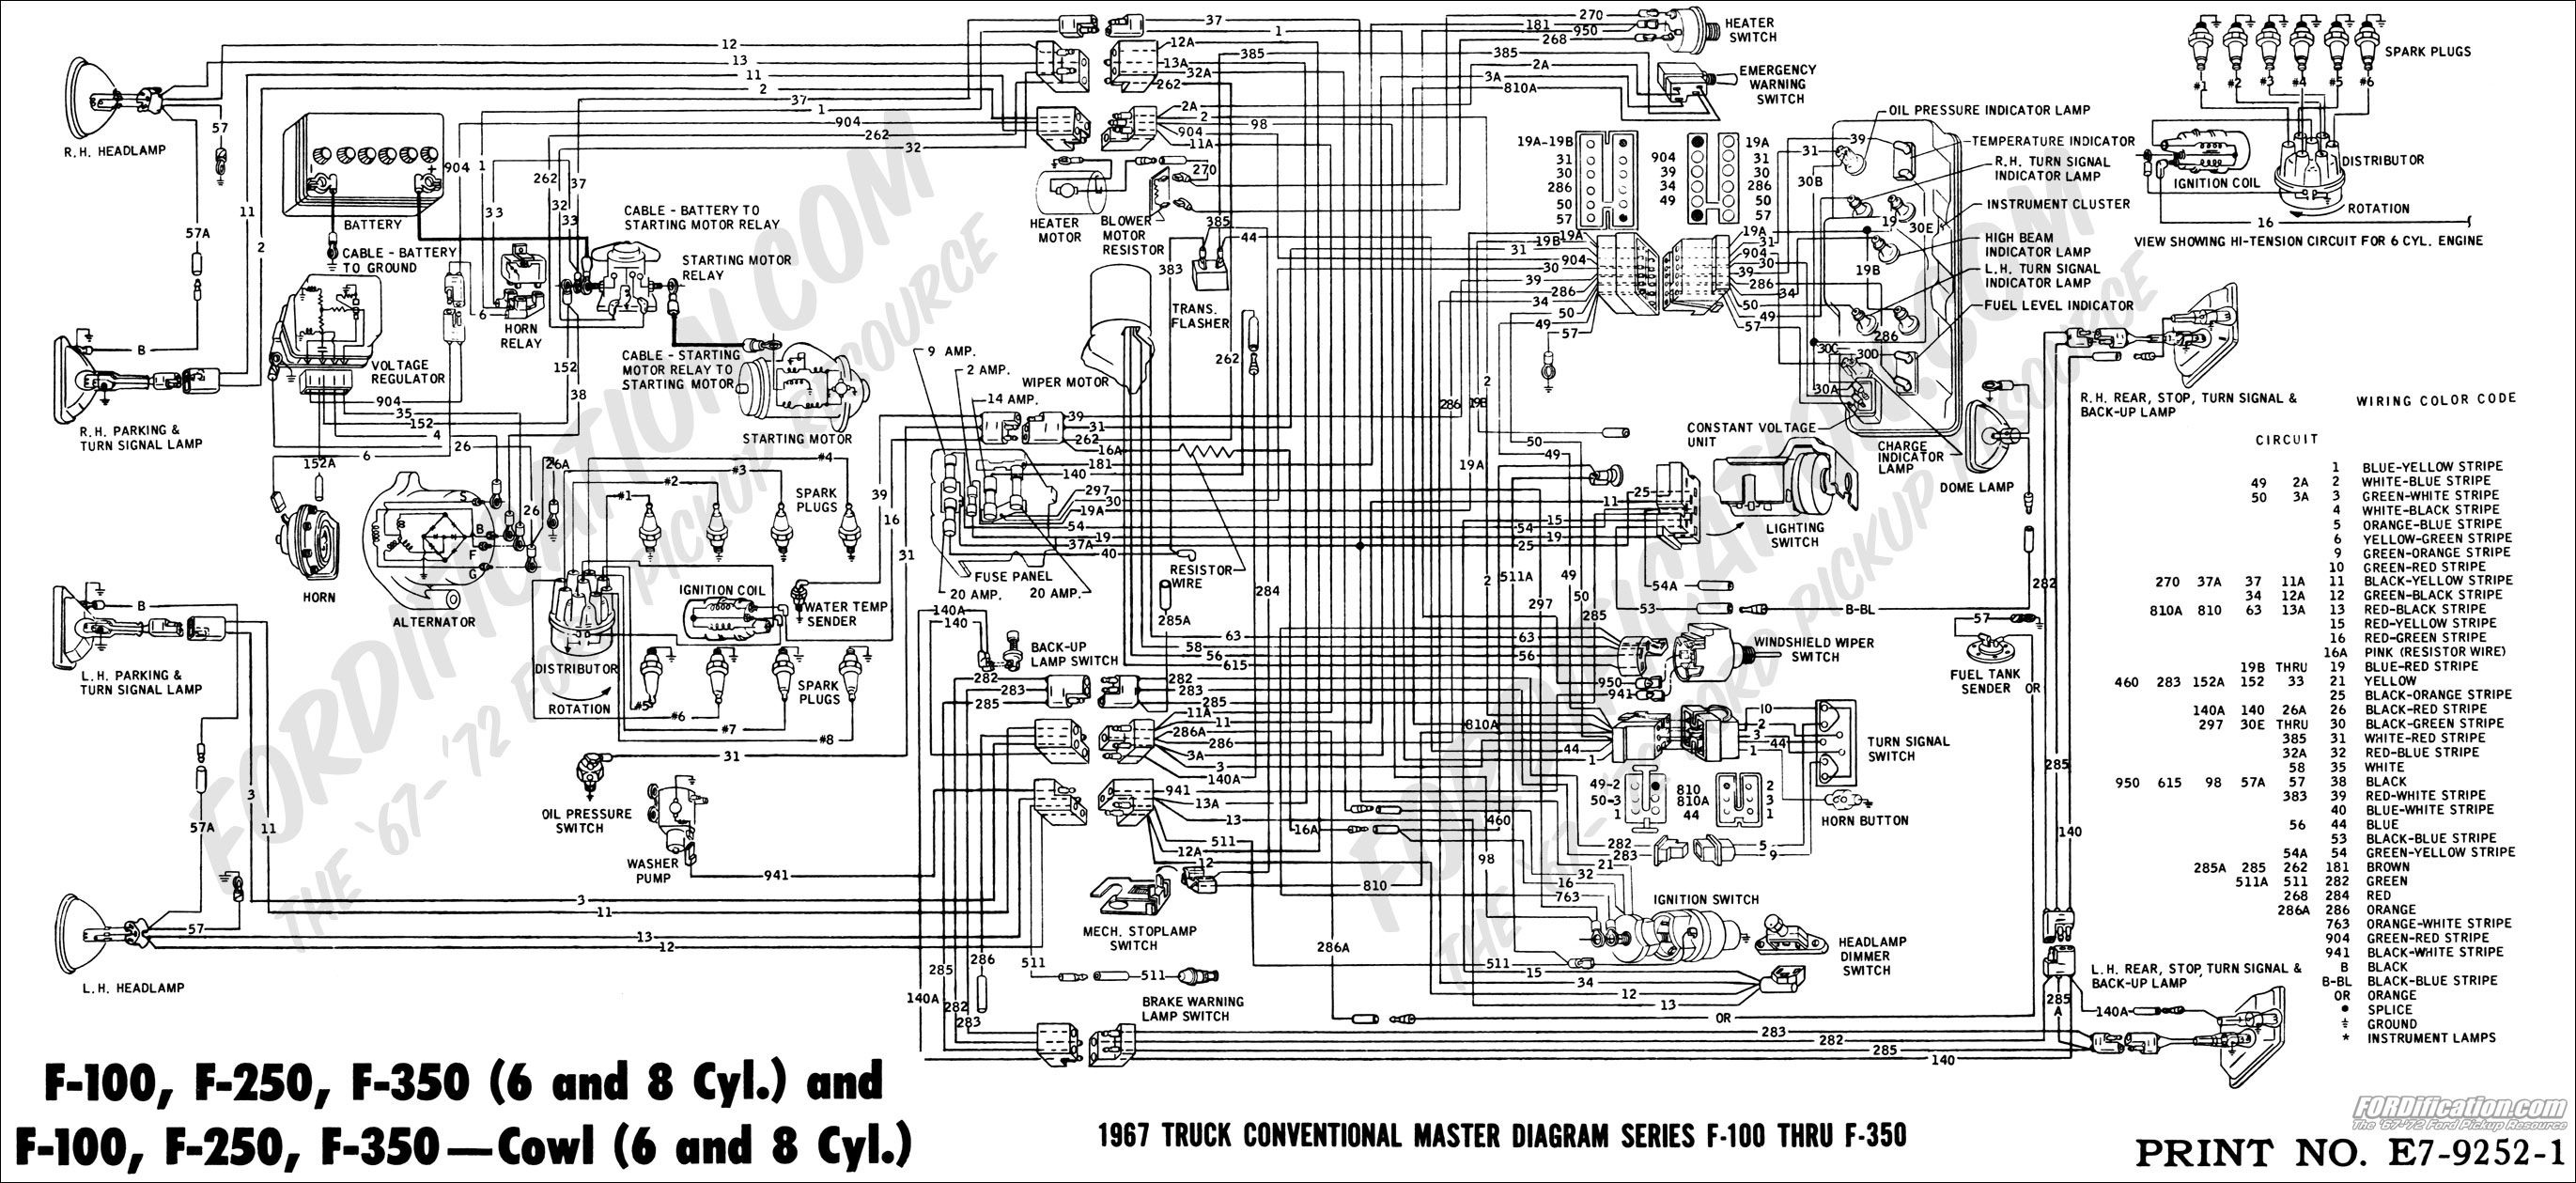 67masterdiagram wiring diagrams ford 2014 f150 readingrat net 2011 ford ranger wiring diagram at bayanpartner.co